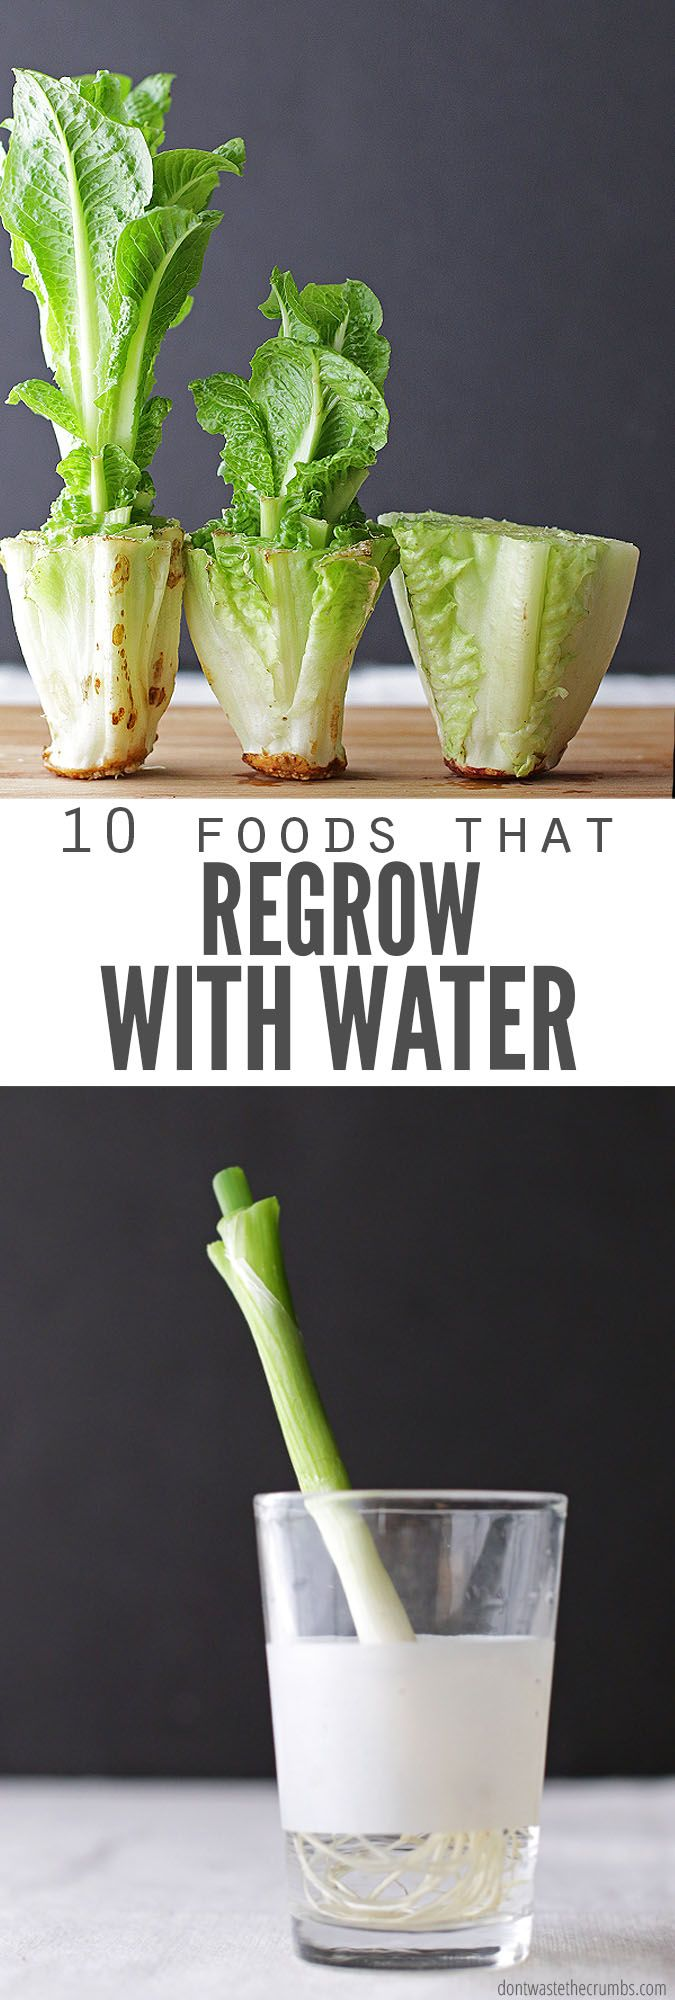 How to Regrow Food in Water: 10 Foods that Regrow Without Dirt